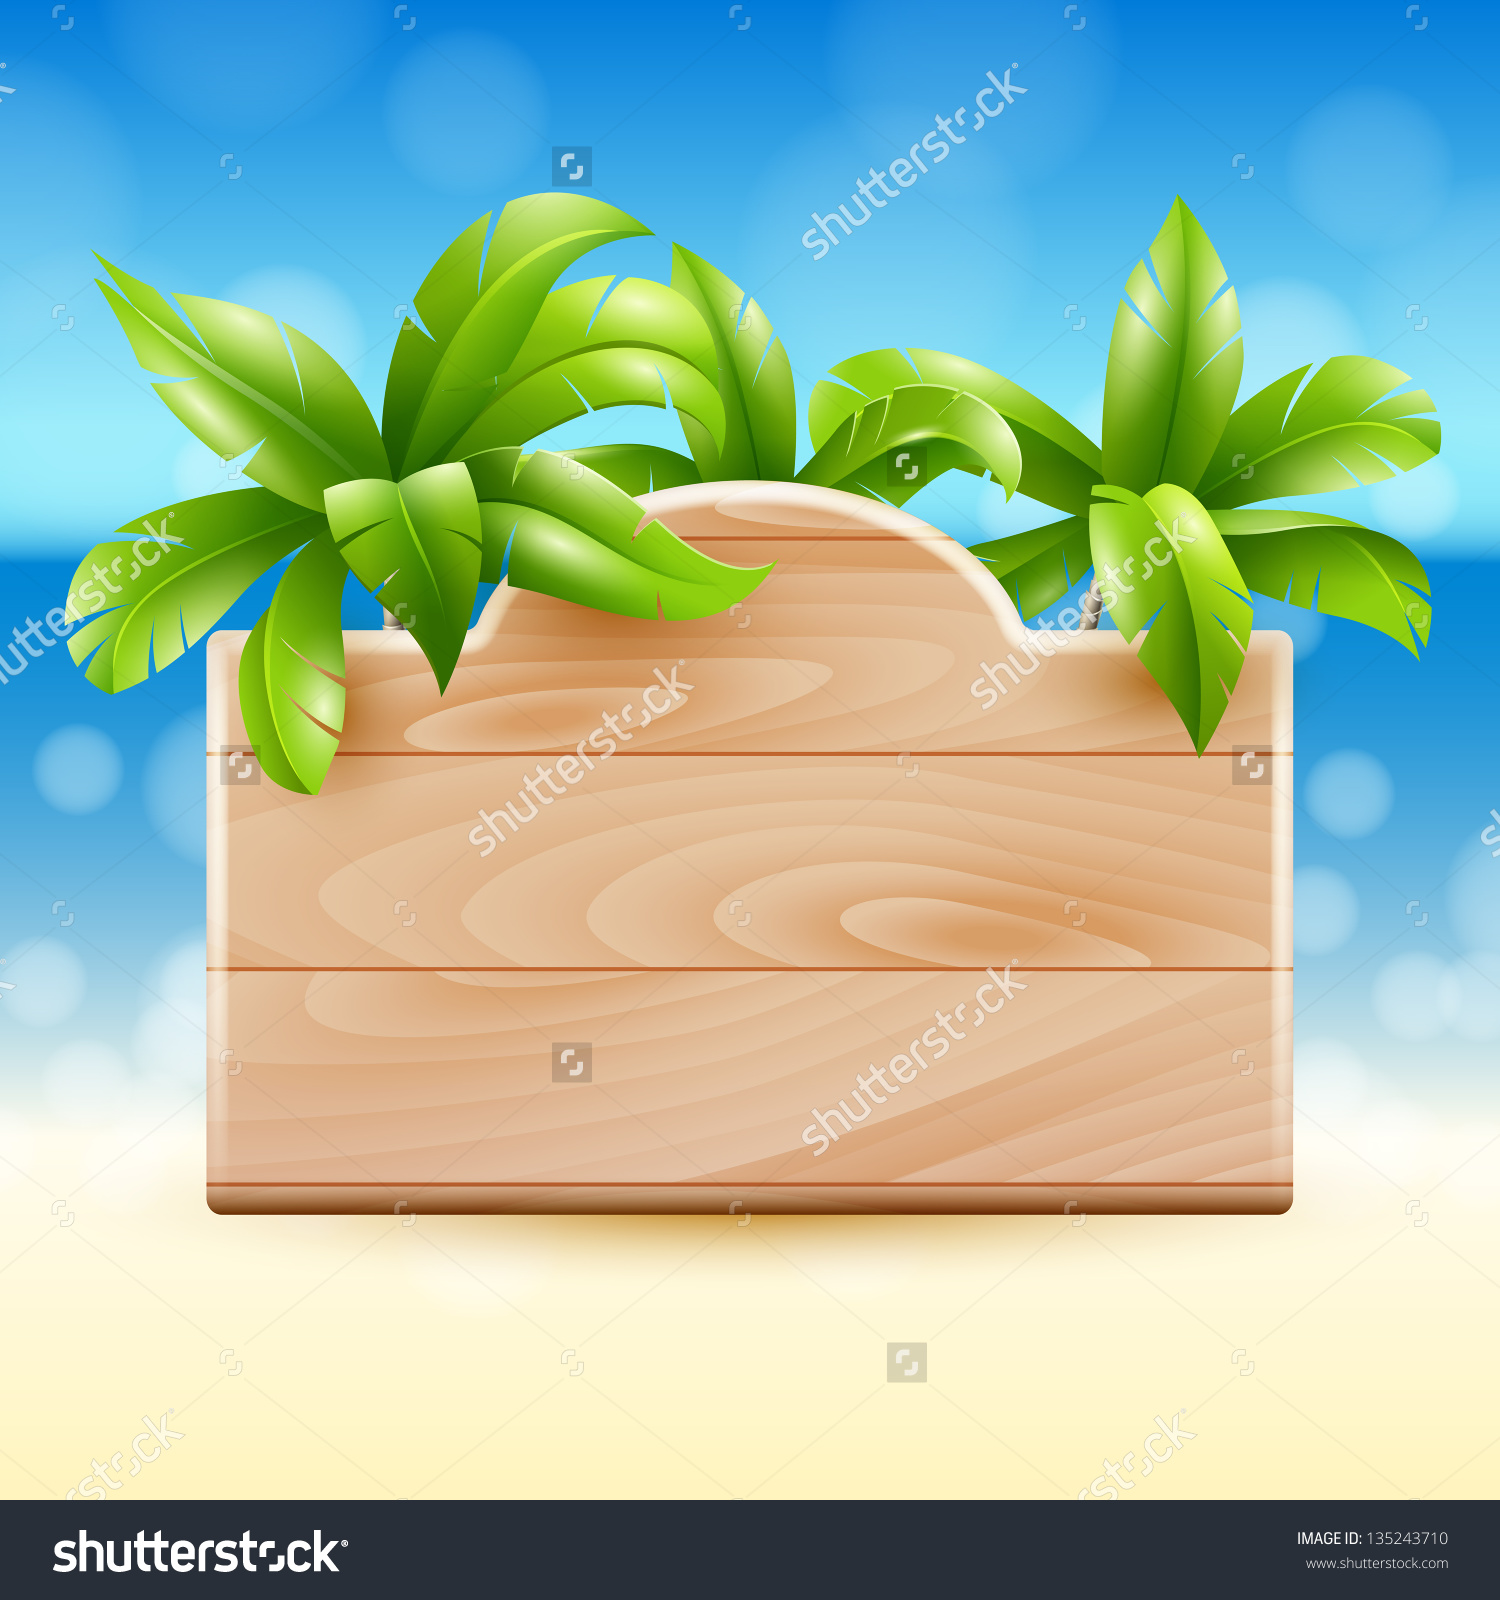 Illustration Tropical Beach Wooden Sign Coconut Stock Vector.